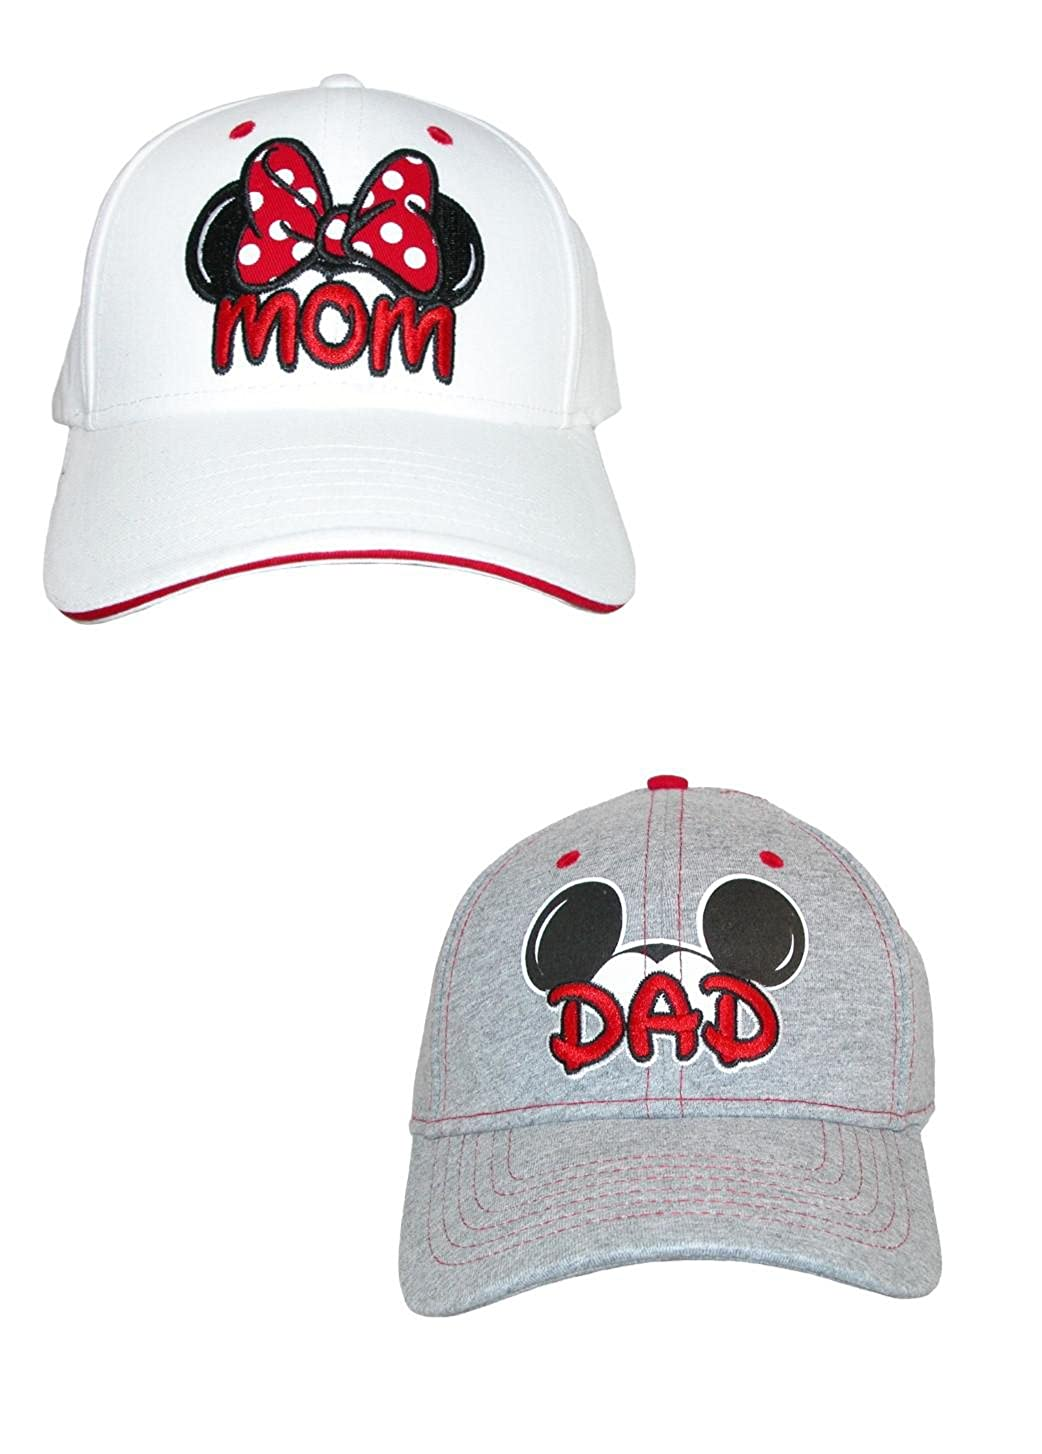 Disney Mom and Dad Fan Baseball Caps (Pack of 2) White/Grey